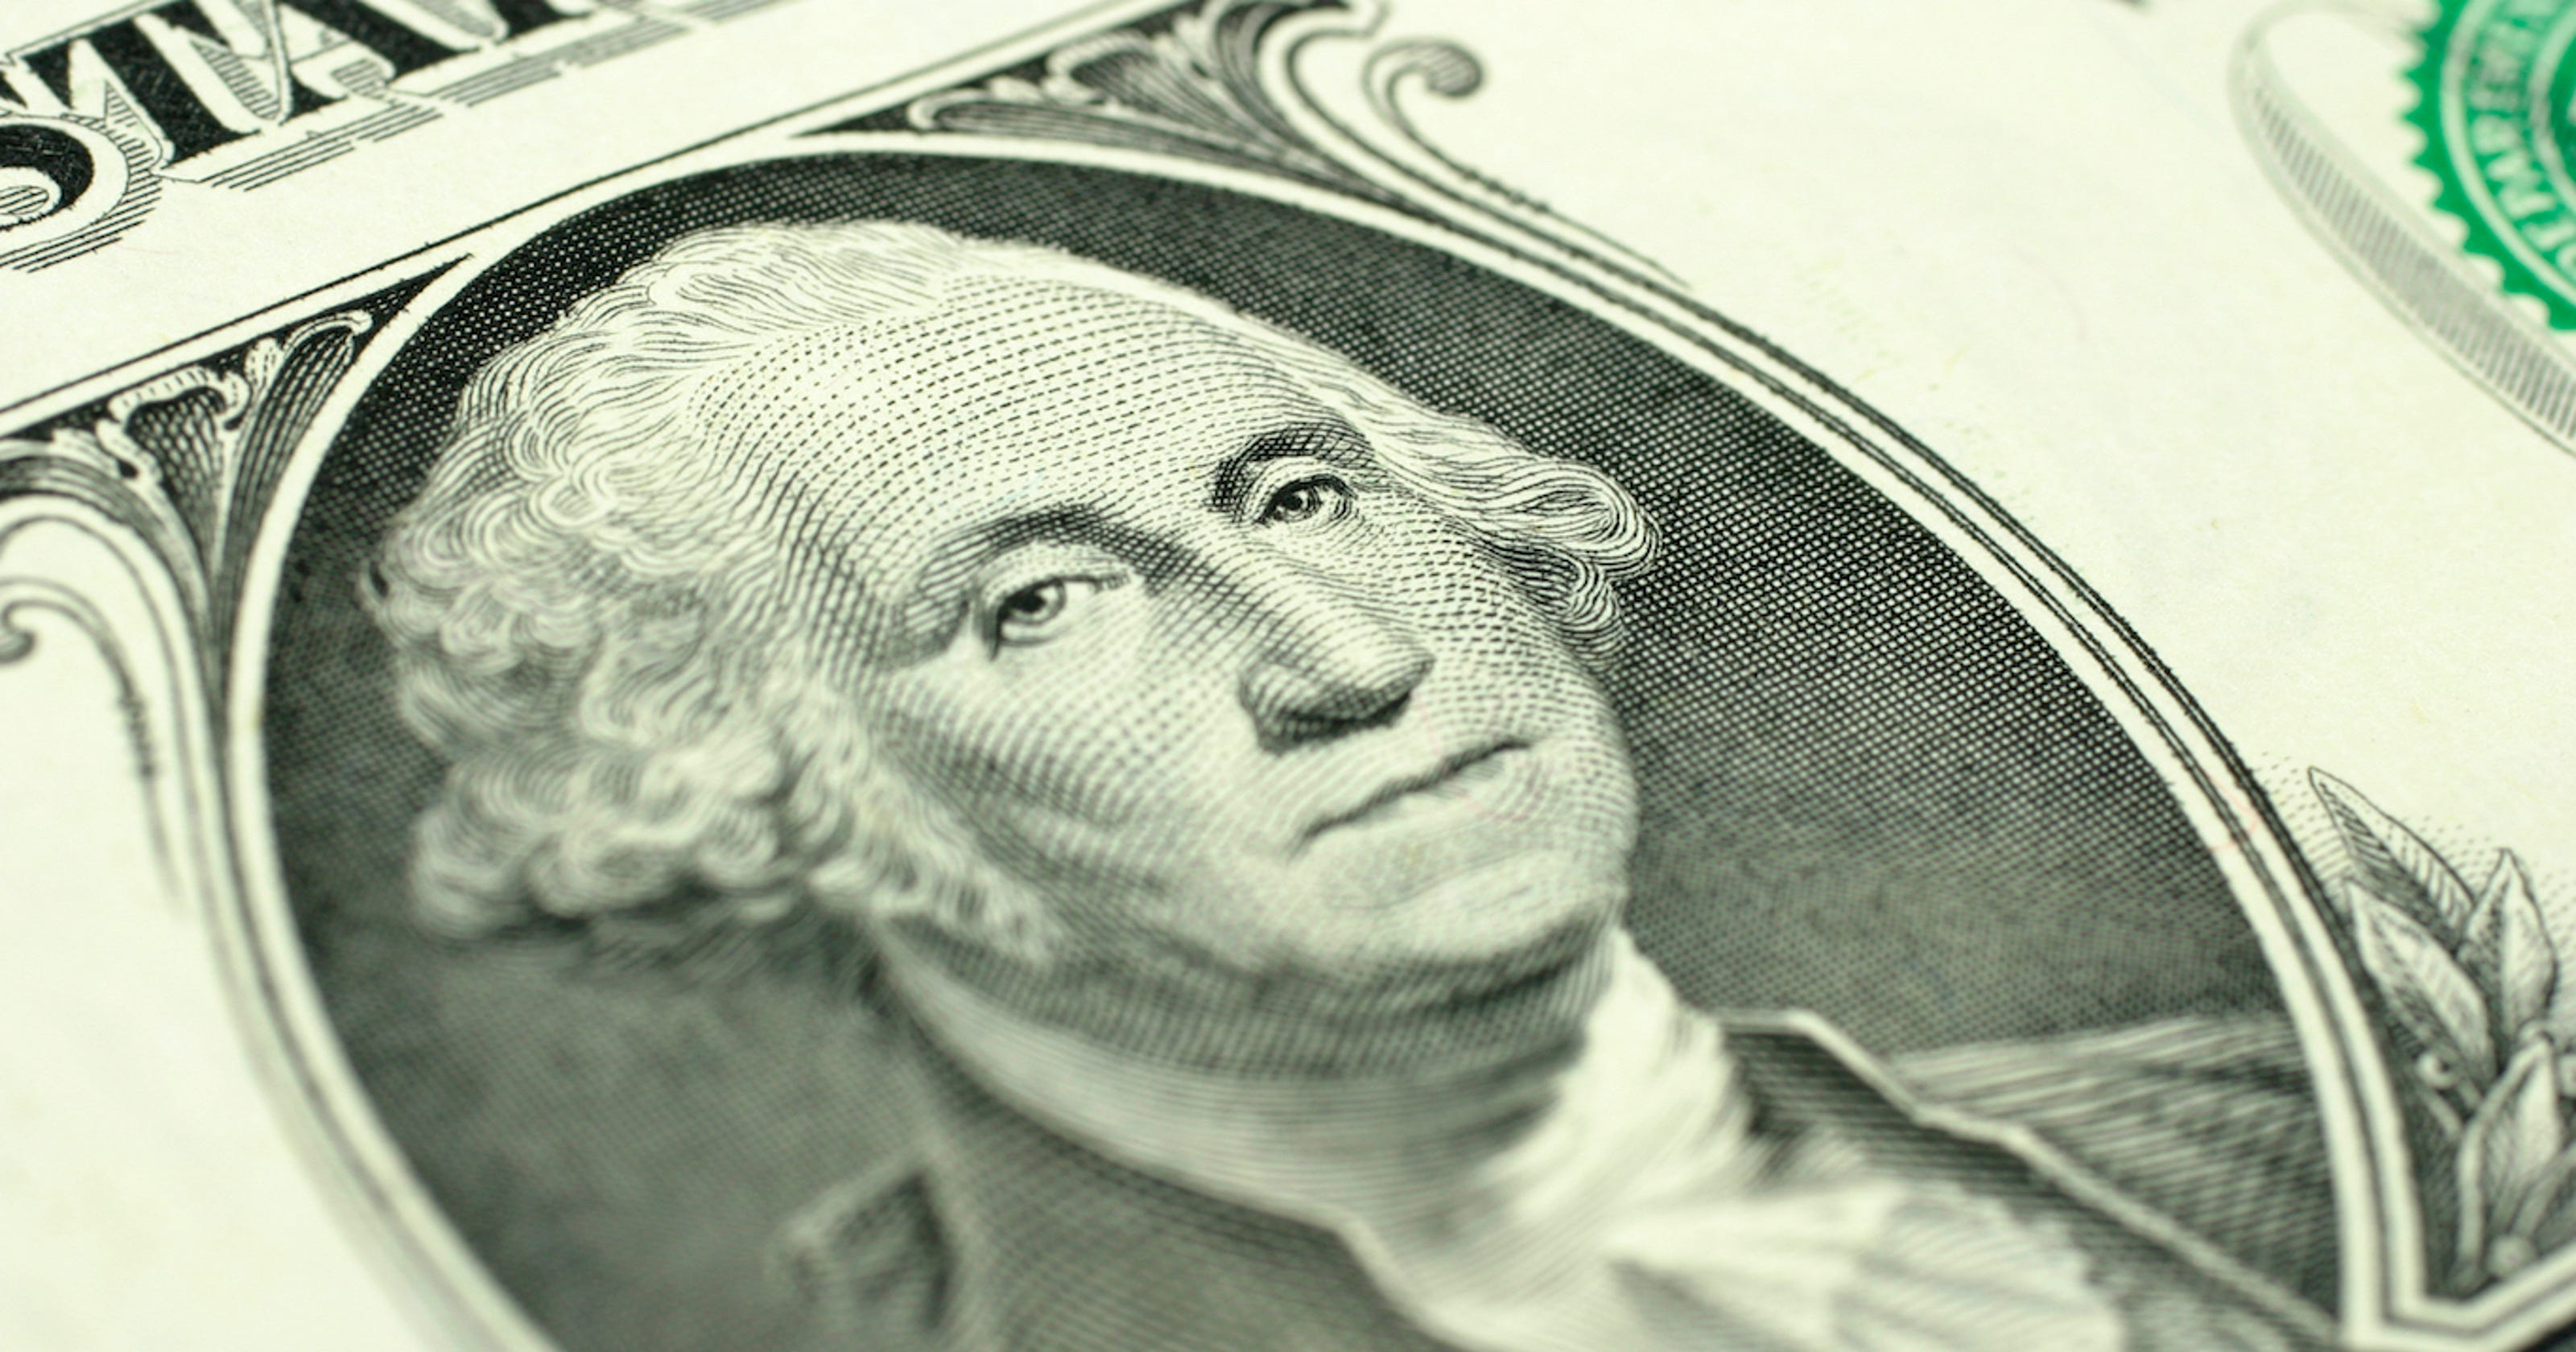 US dollar: Here's how much $1 is worth in every state